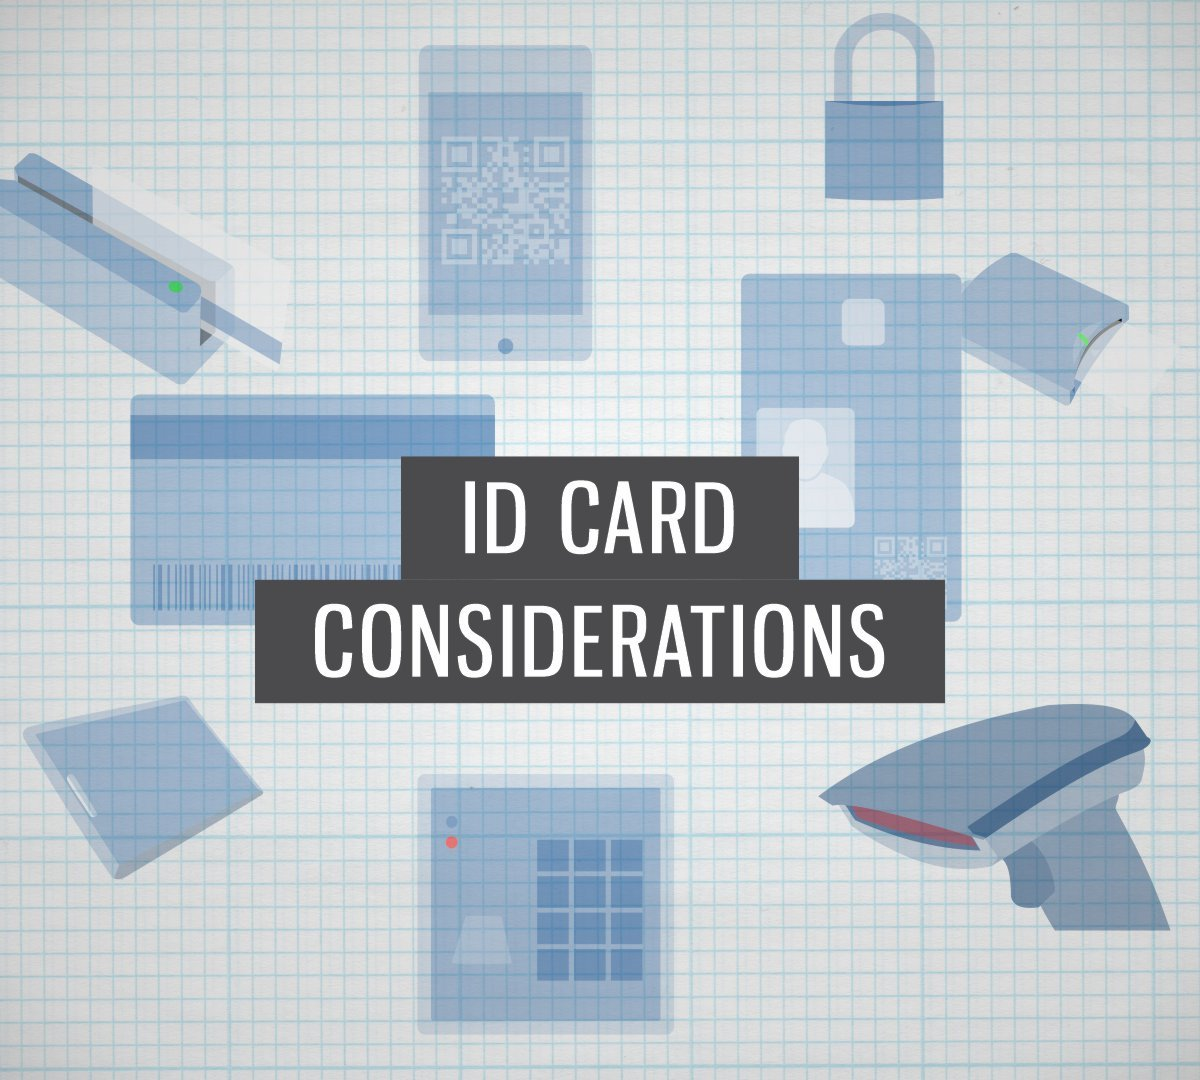 ID Card Considerations Posts